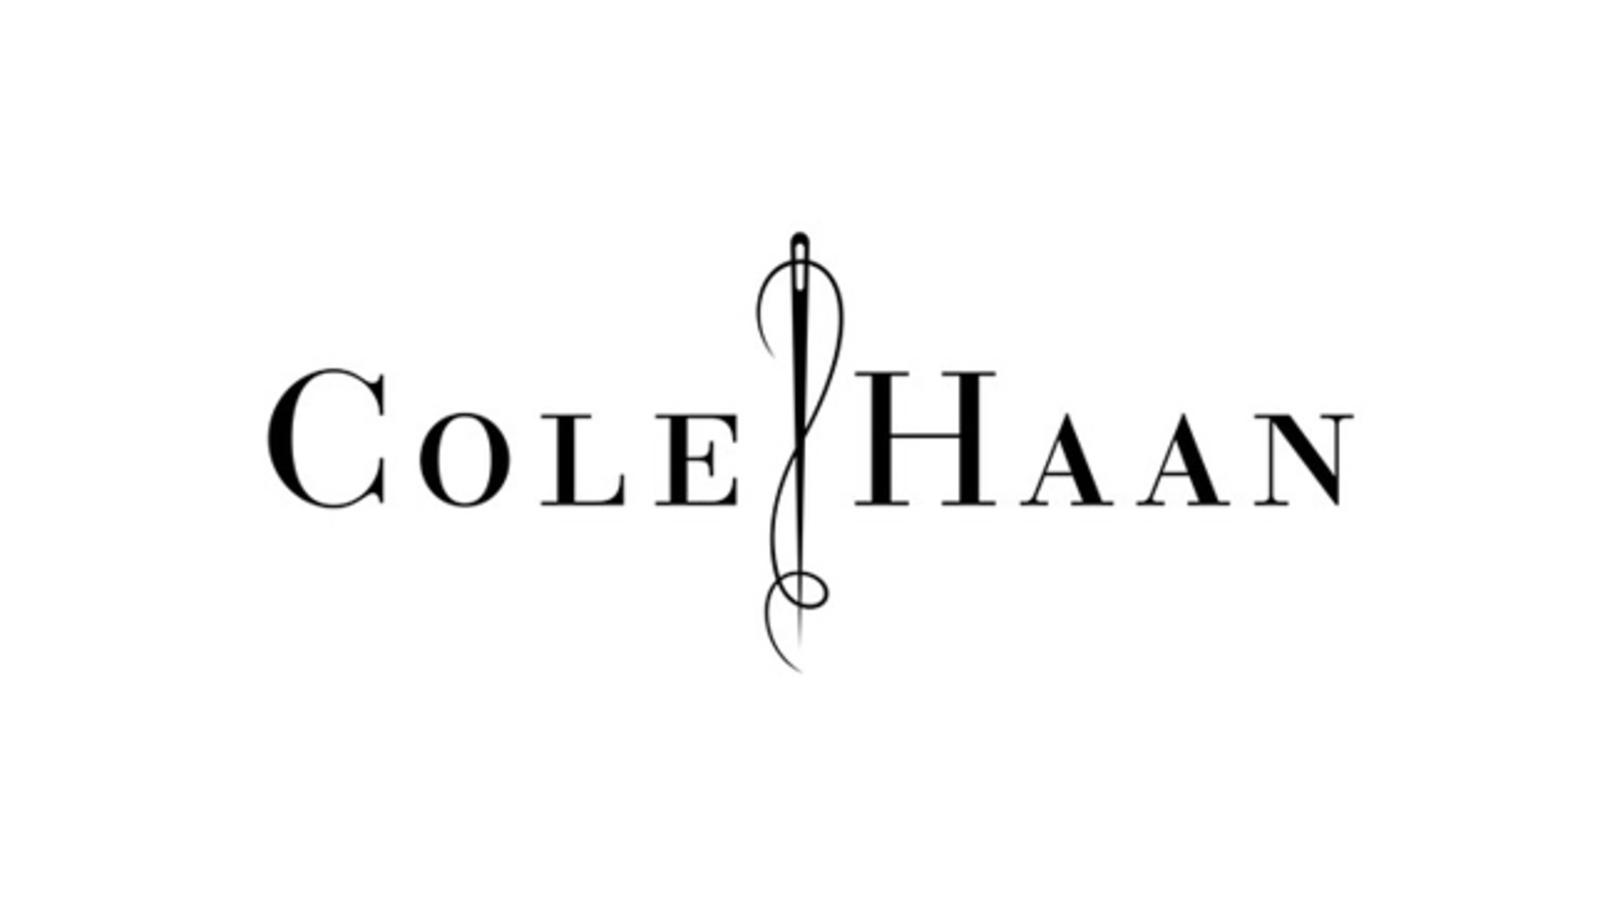 NIKE, Inc. Announces Sale of Cole Haan to Apax Partners.